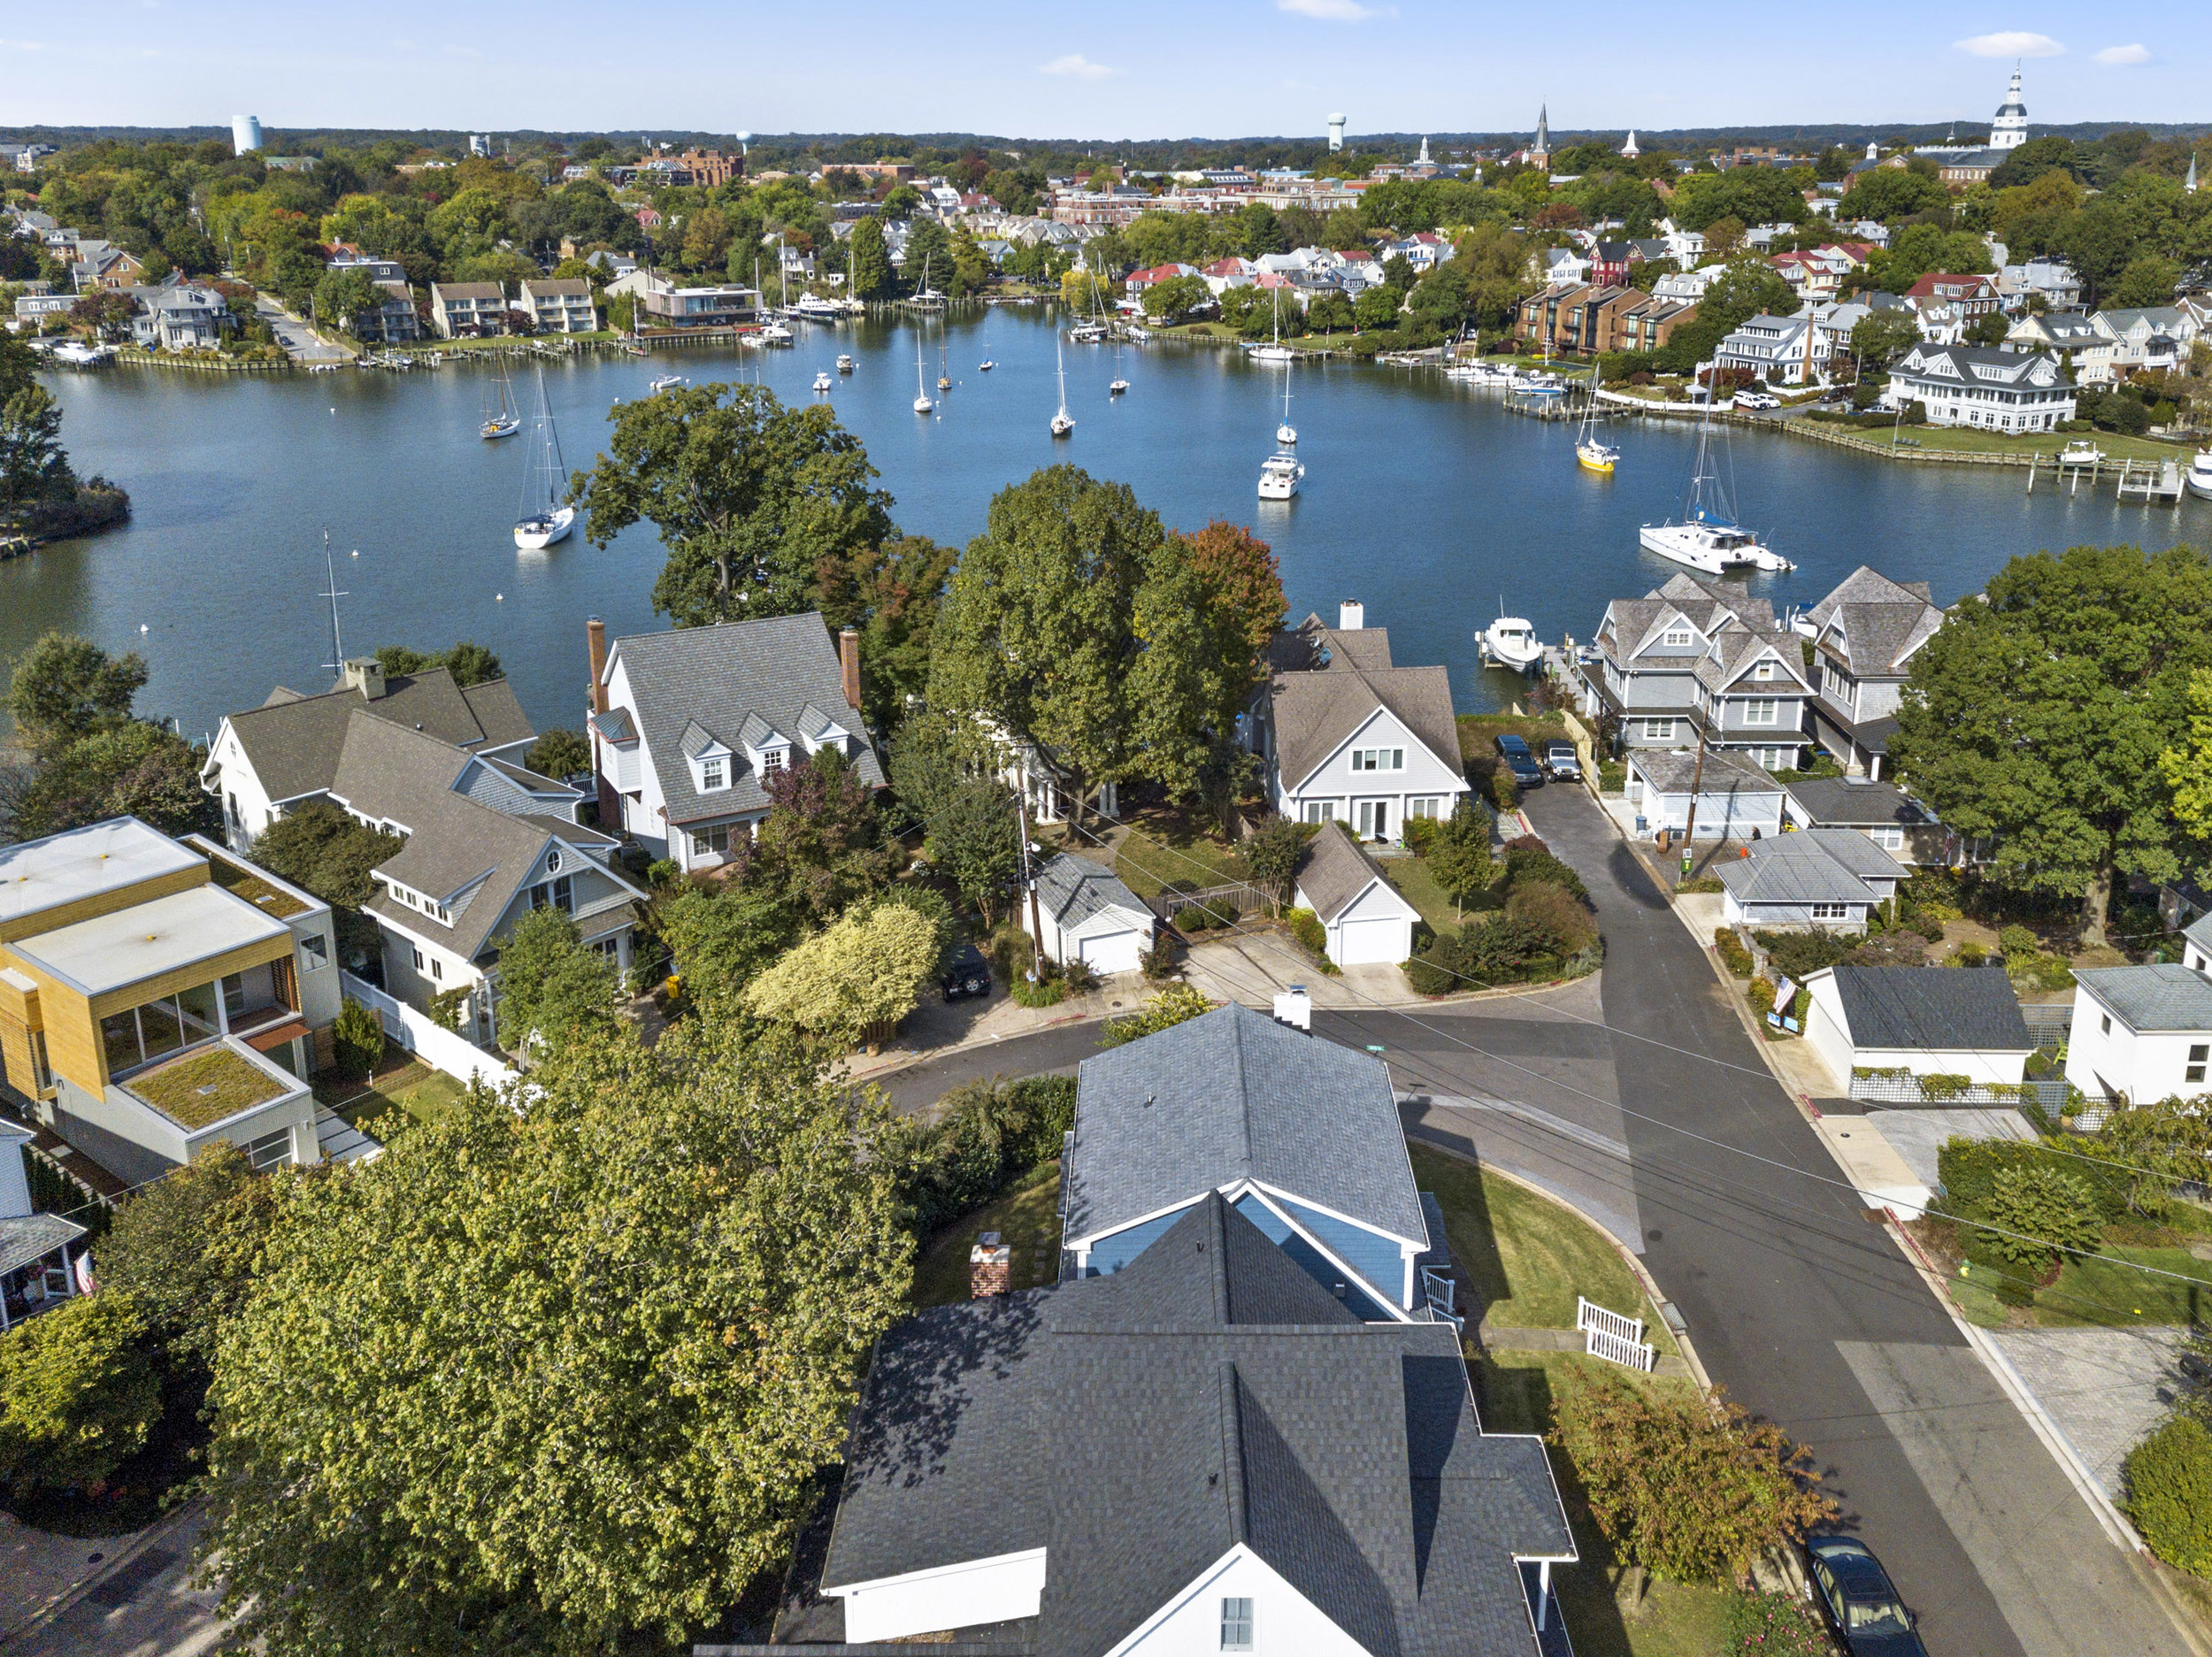 Spa Creek and Lockwood Court in the Annapolis community of Eastport.